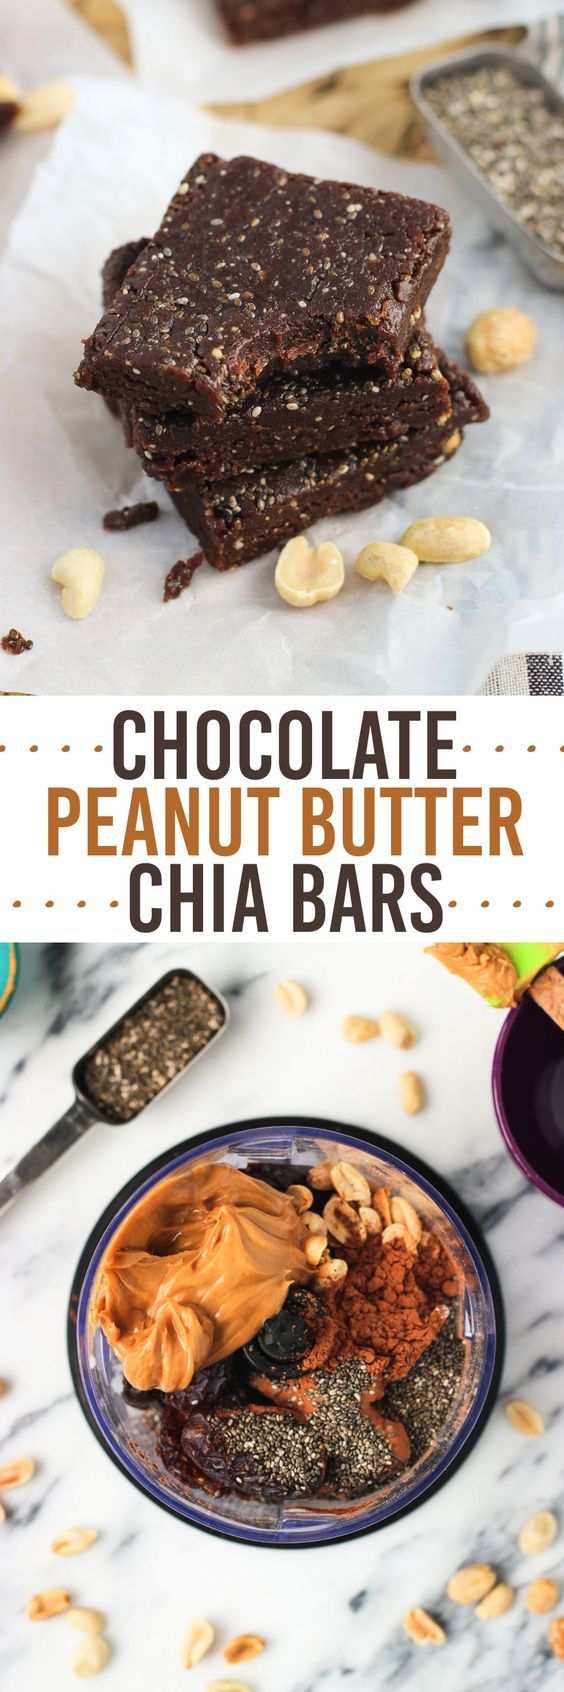 Chocolate Peanut Butter Chia Bars - an easy five-ingredient healthy snack recipe. These bars are no-bake, naturally sweetened kids snack Read more in http://natureandhealth.net/